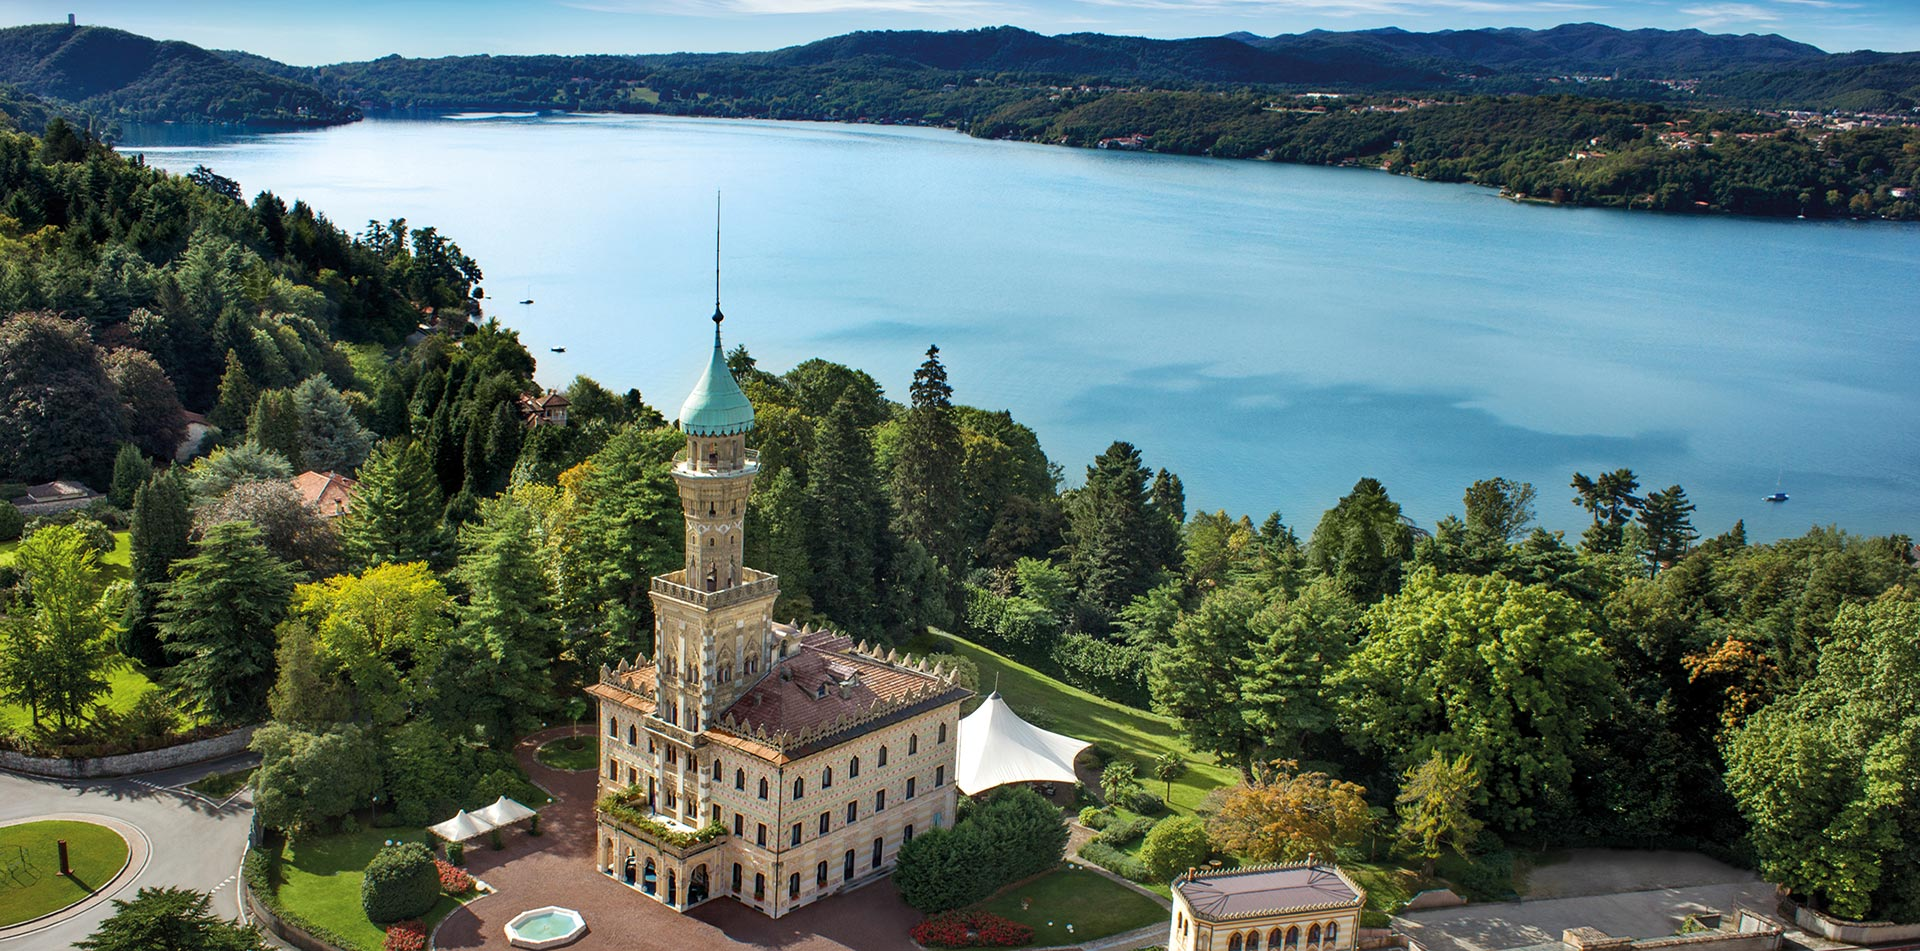 Europe Italy Lake Orta Villa Crespi historic Moorish style architecture scenic aerial view - luxury vacation destinations